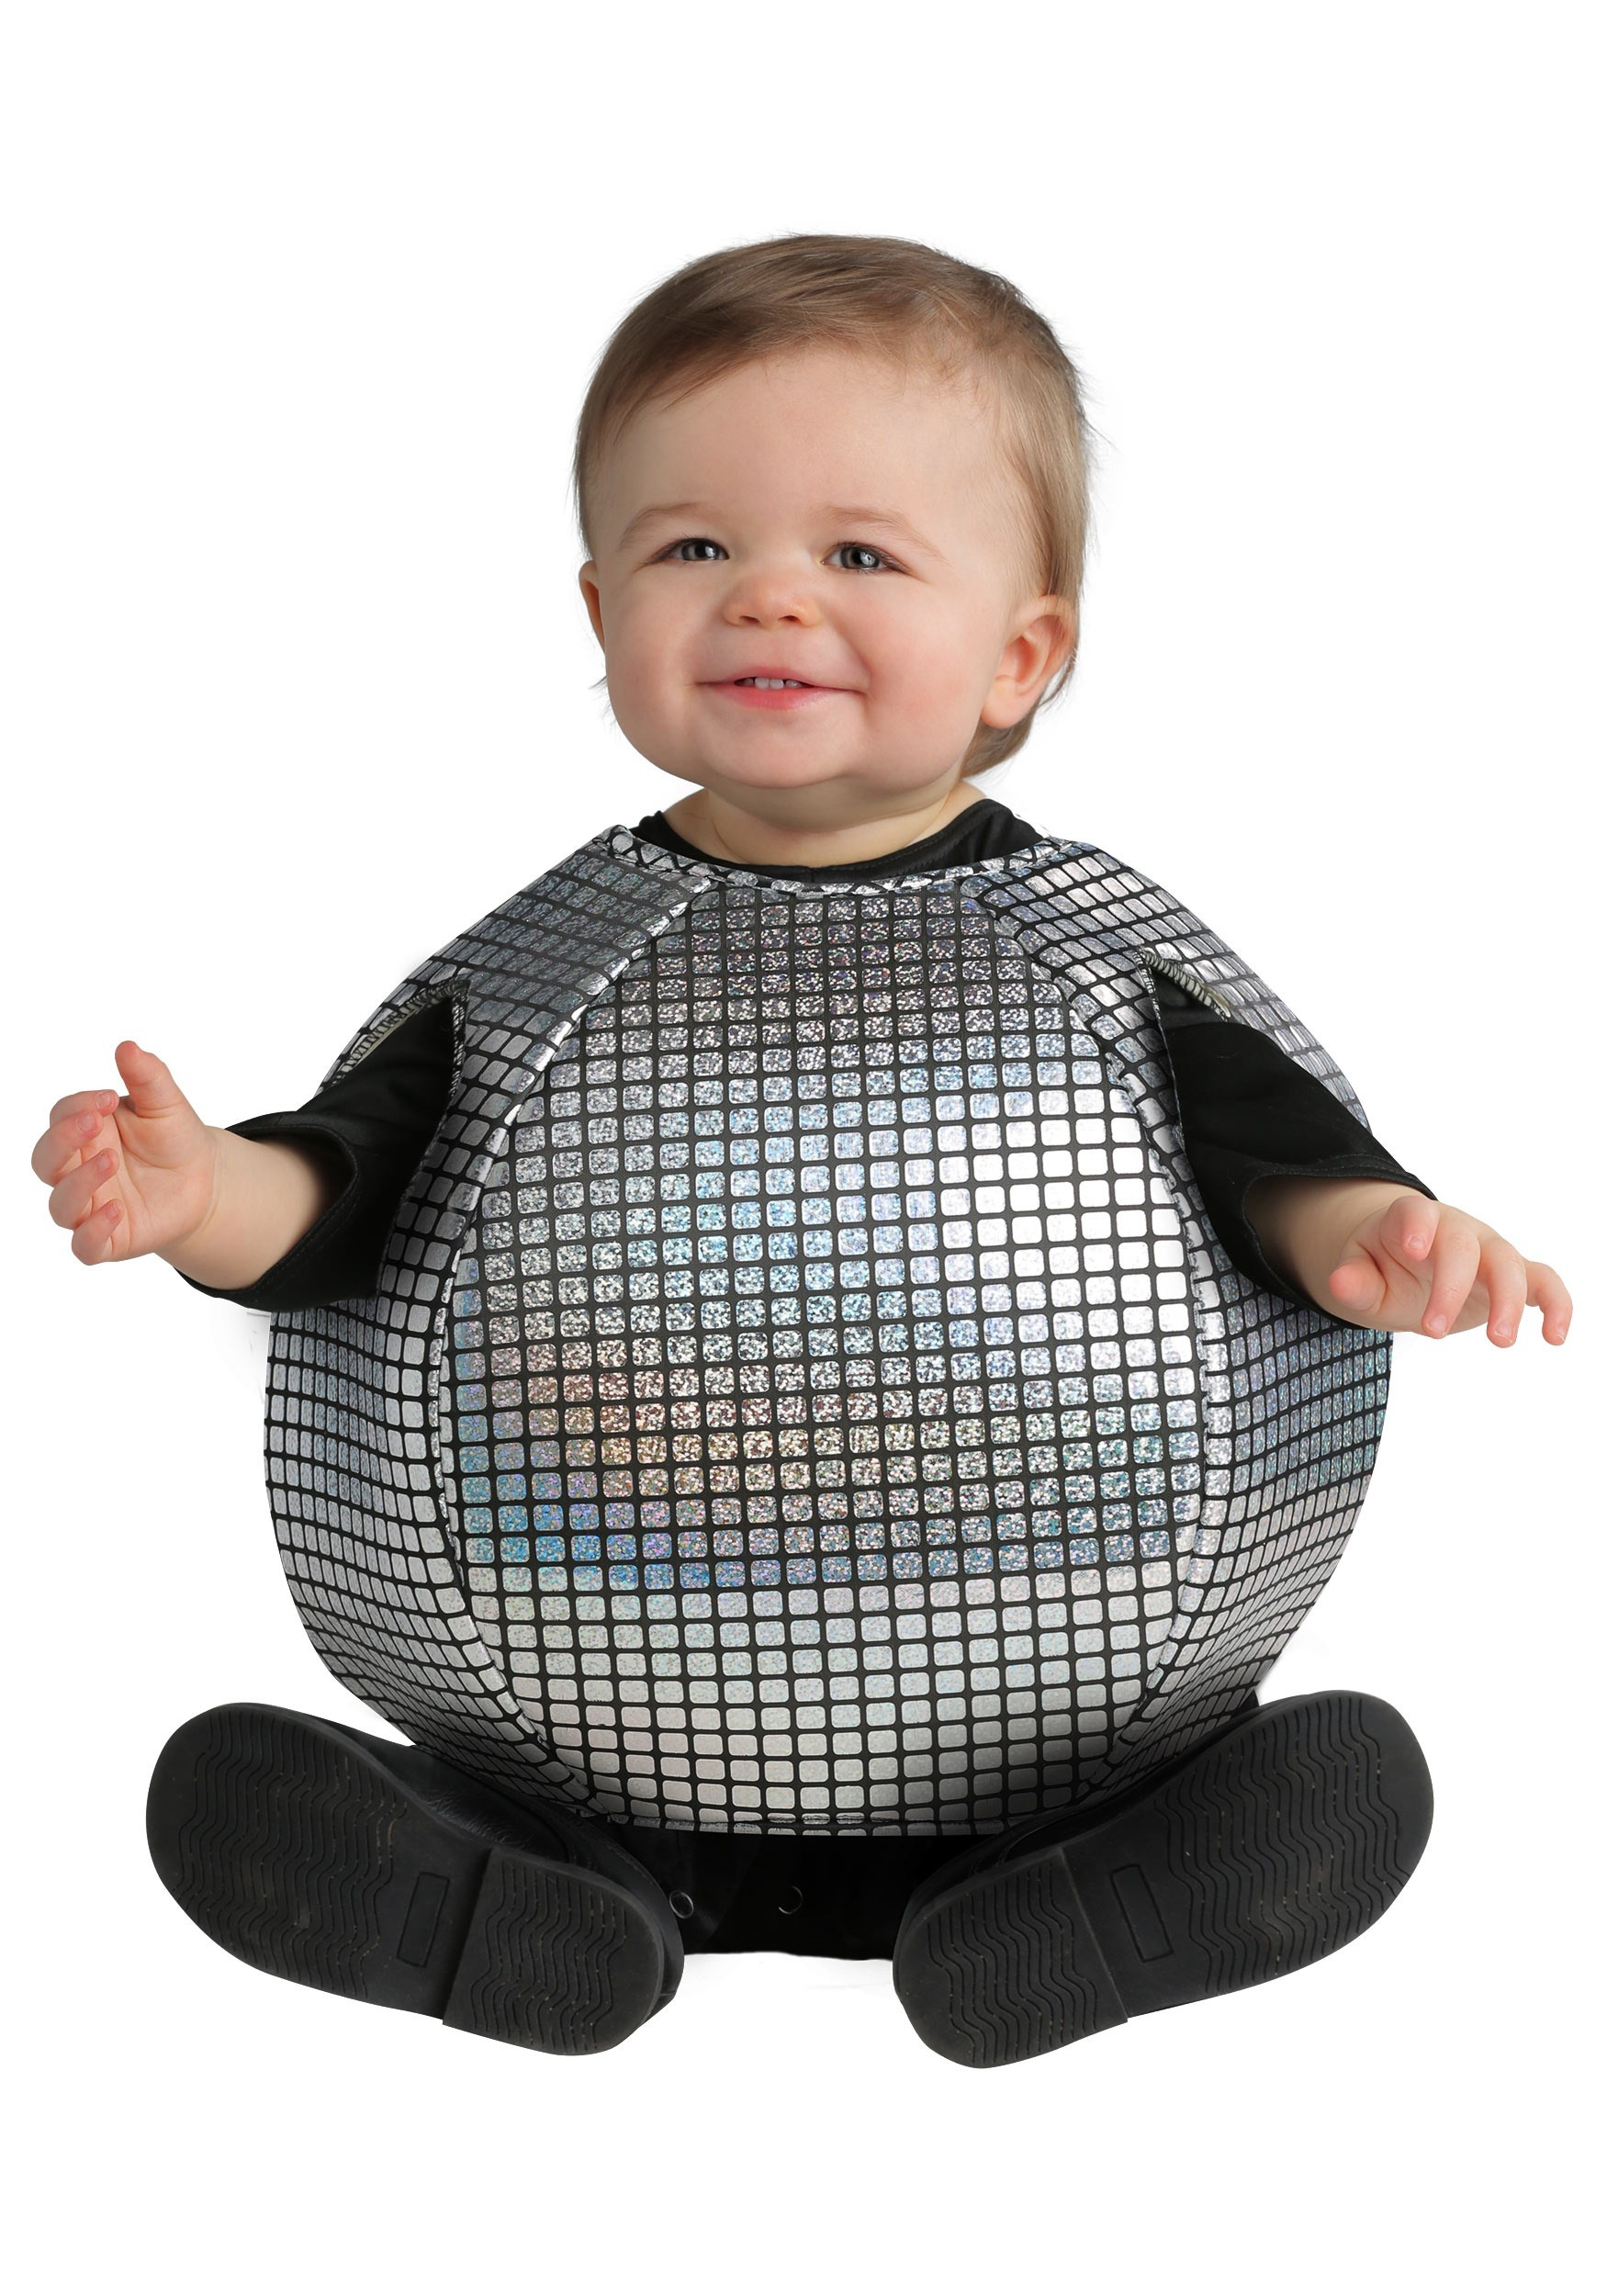 Halloween Costumes For Infants 3 6 Months